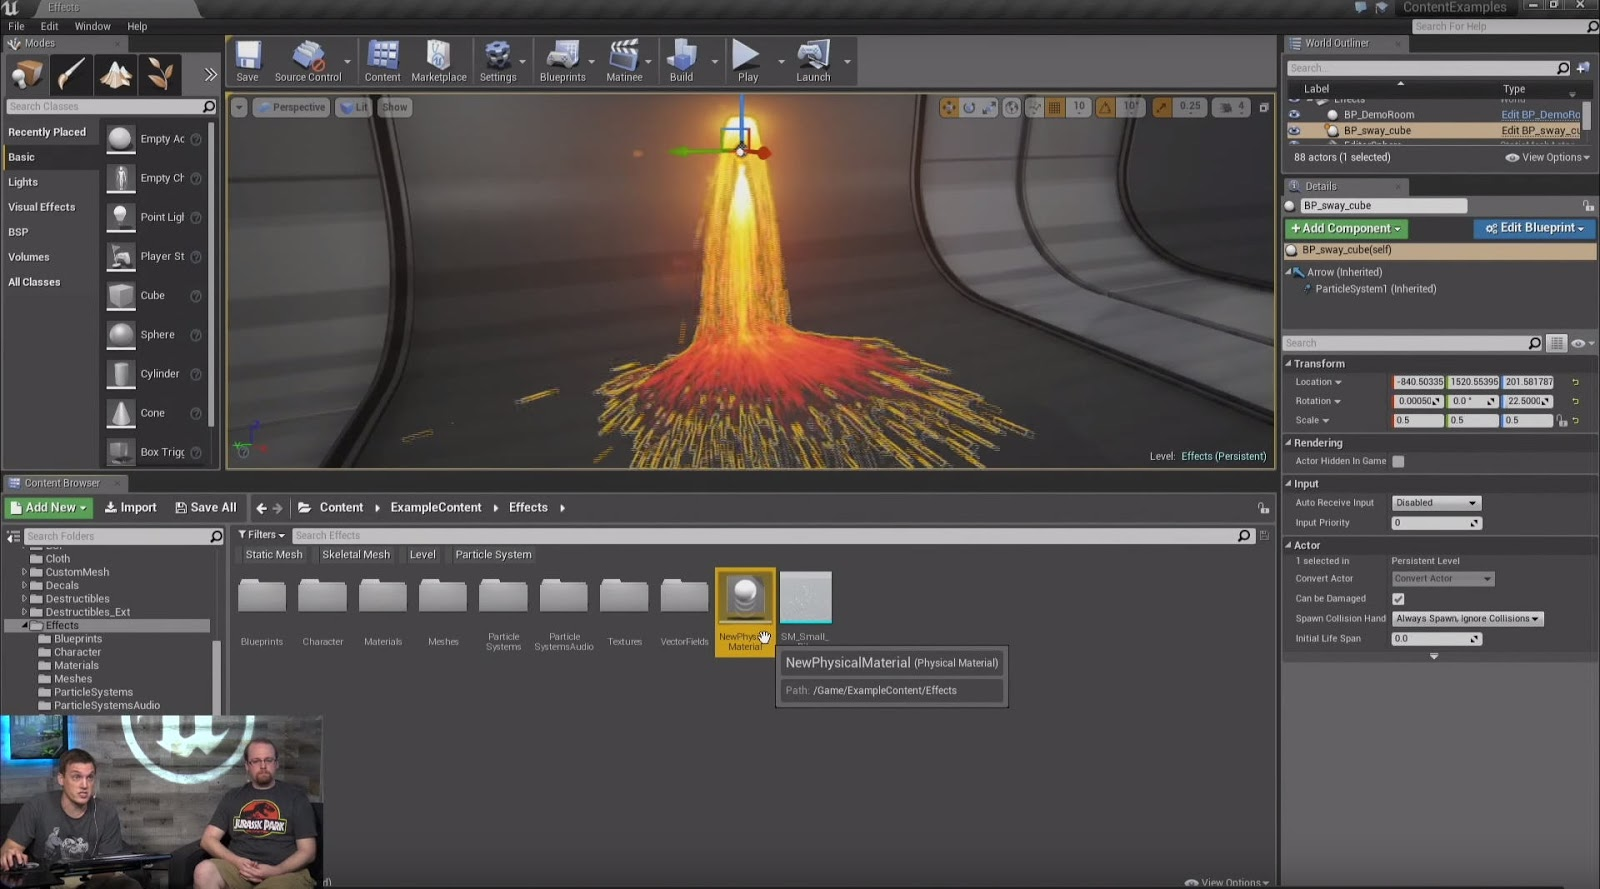 Physics-Based Simulations and Effects in Unreal Engine | CG TUTORIAL